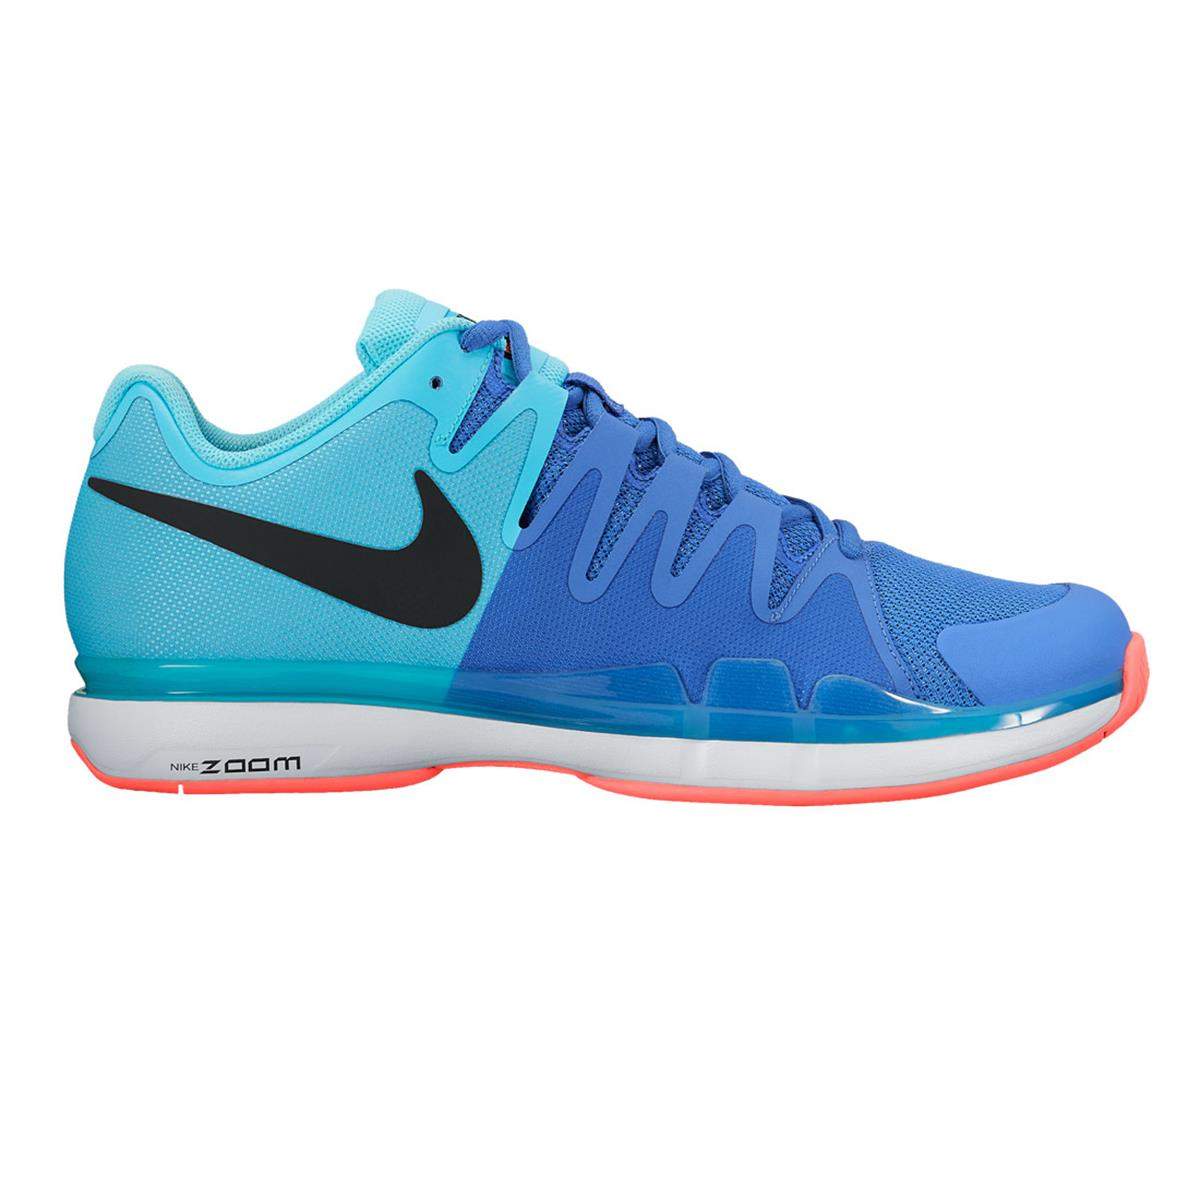 Find great deals on eBay for nikeid shoes. Shop with confidence.